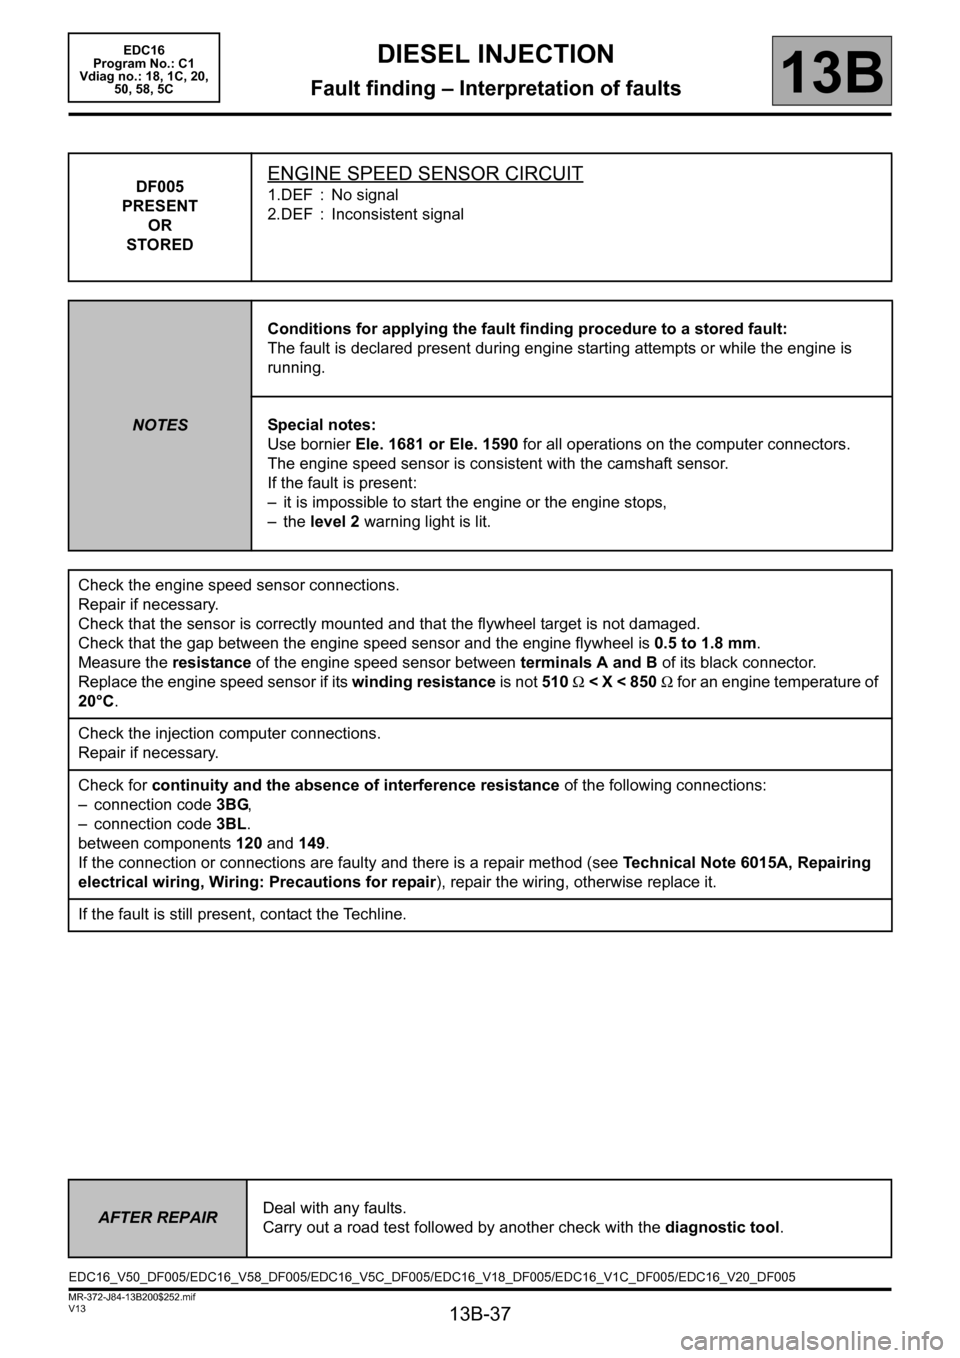 RENAULT SCENIC 2011 J95 / 3.G Engine And Peripherals EDC16 Workshop Manual, Page 37